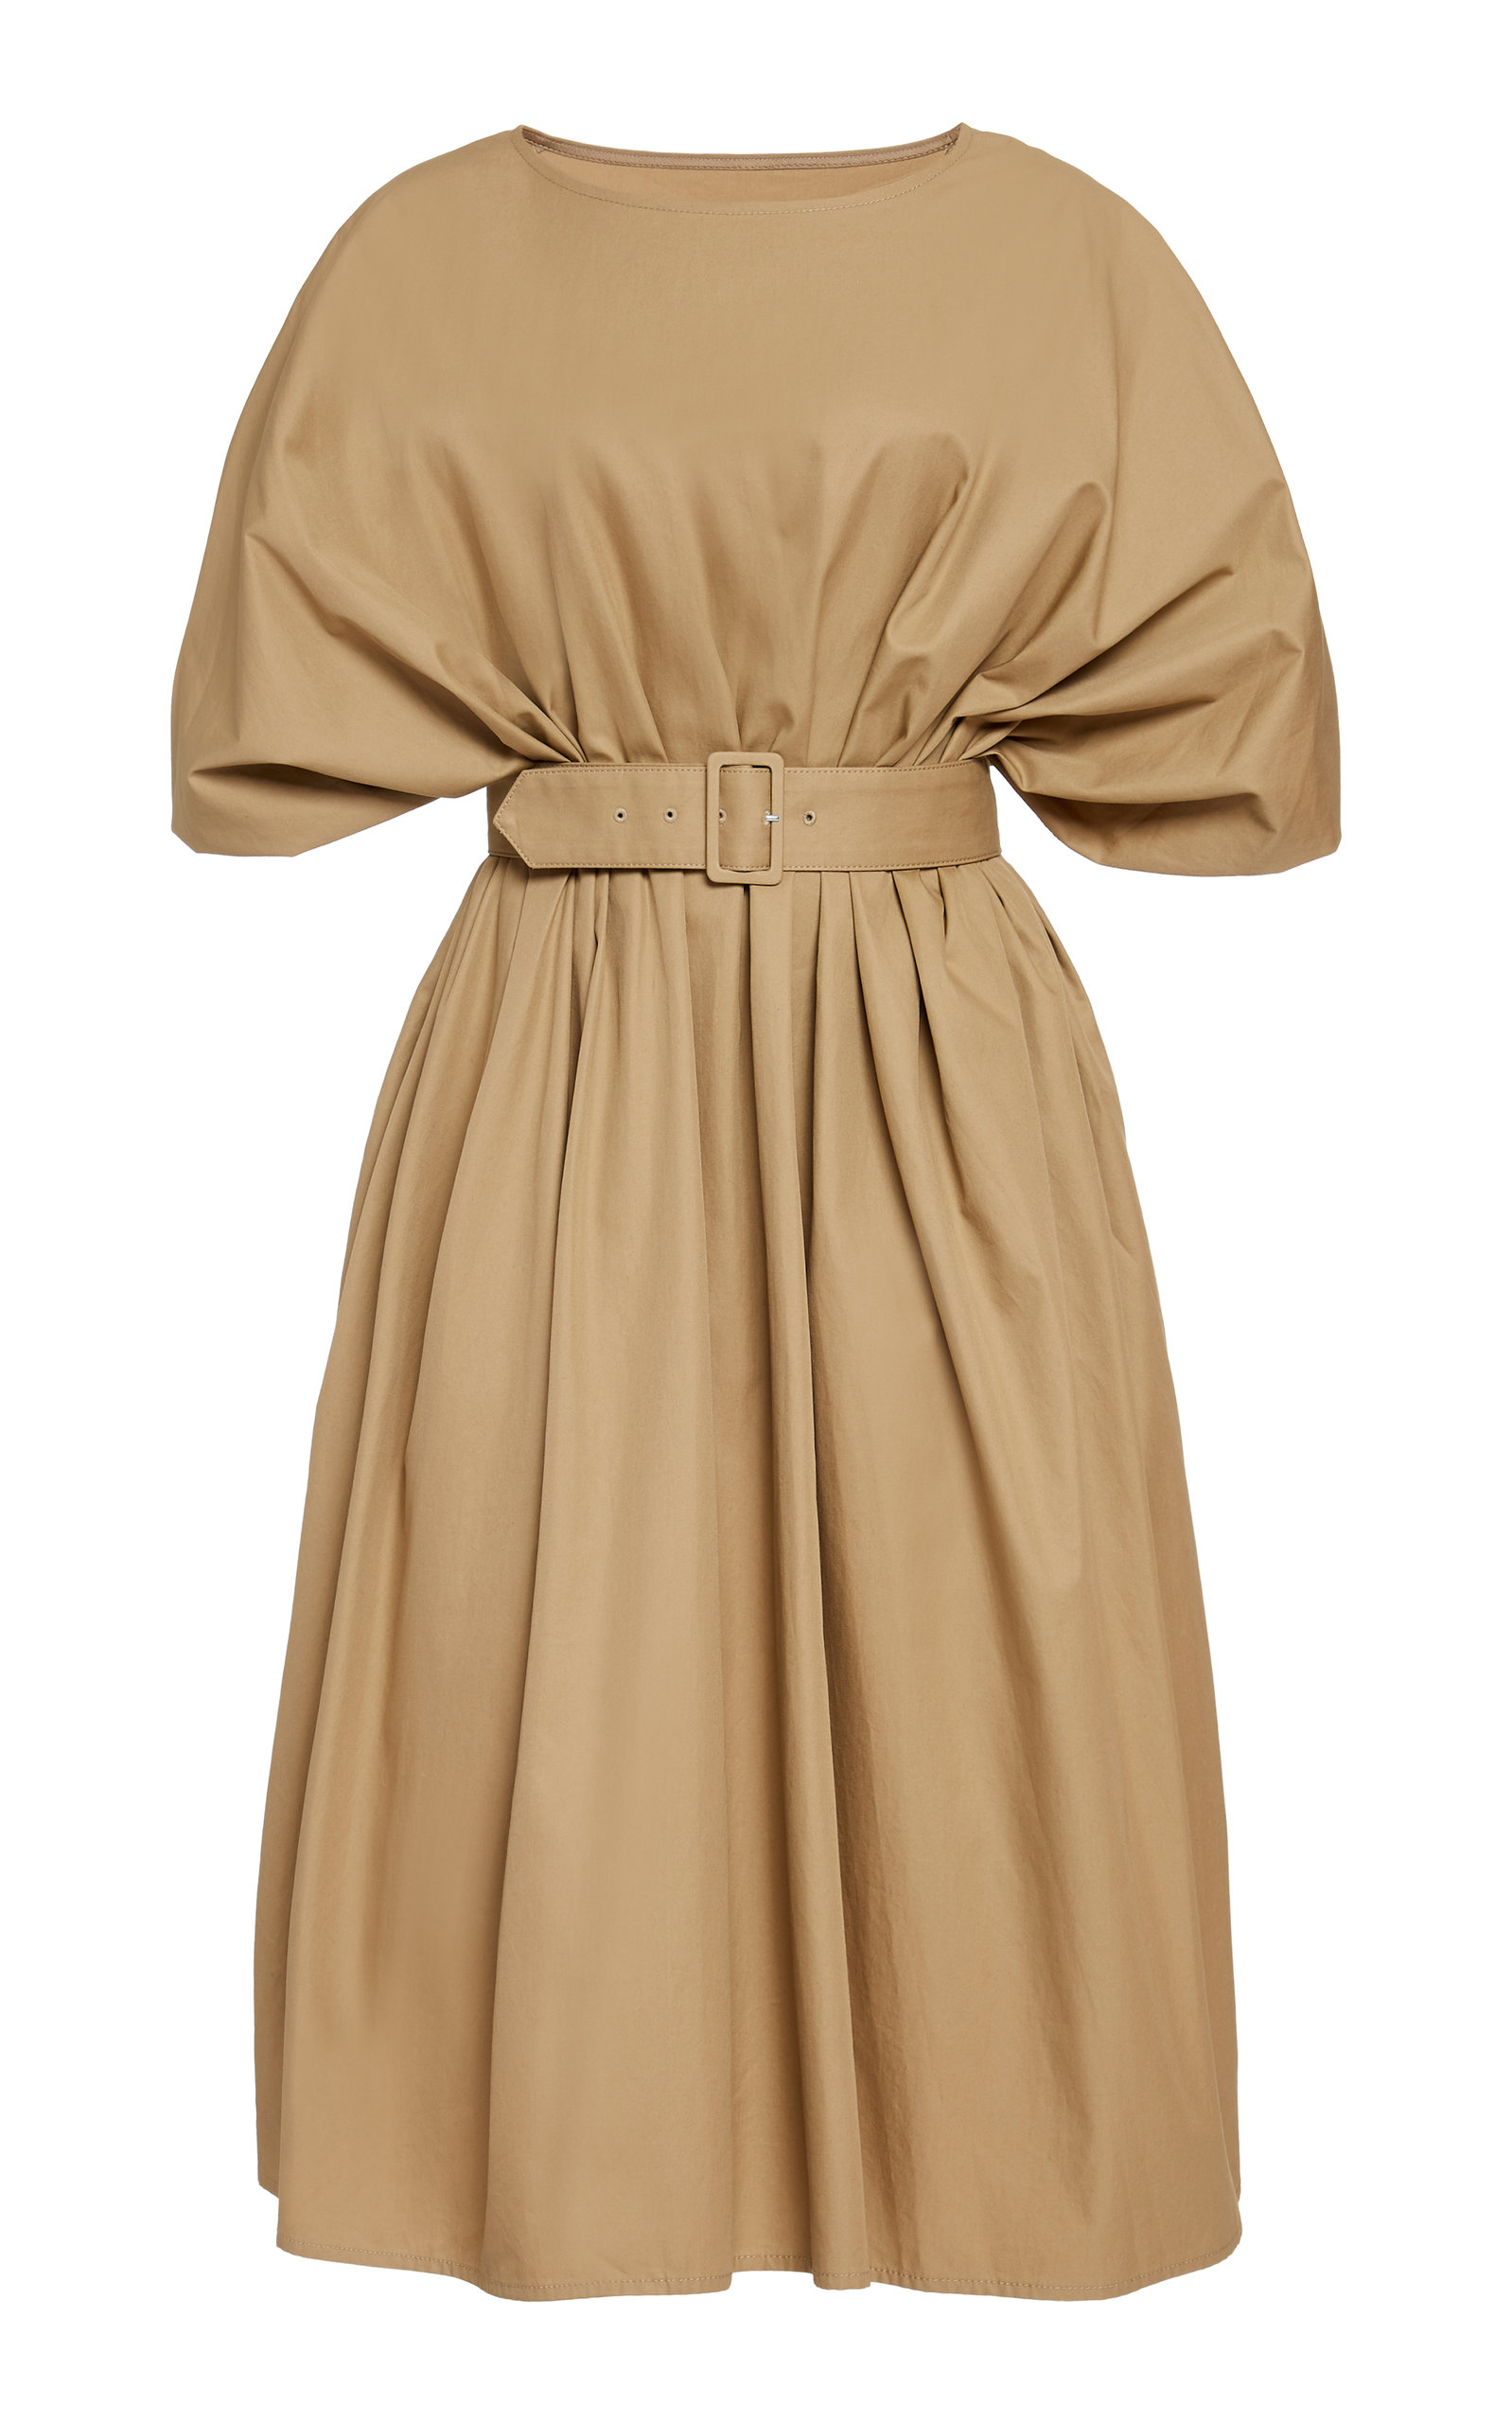 Mm6 Maison Margiela Dresses BELTED COTTON-TWILL MIDI DRESS